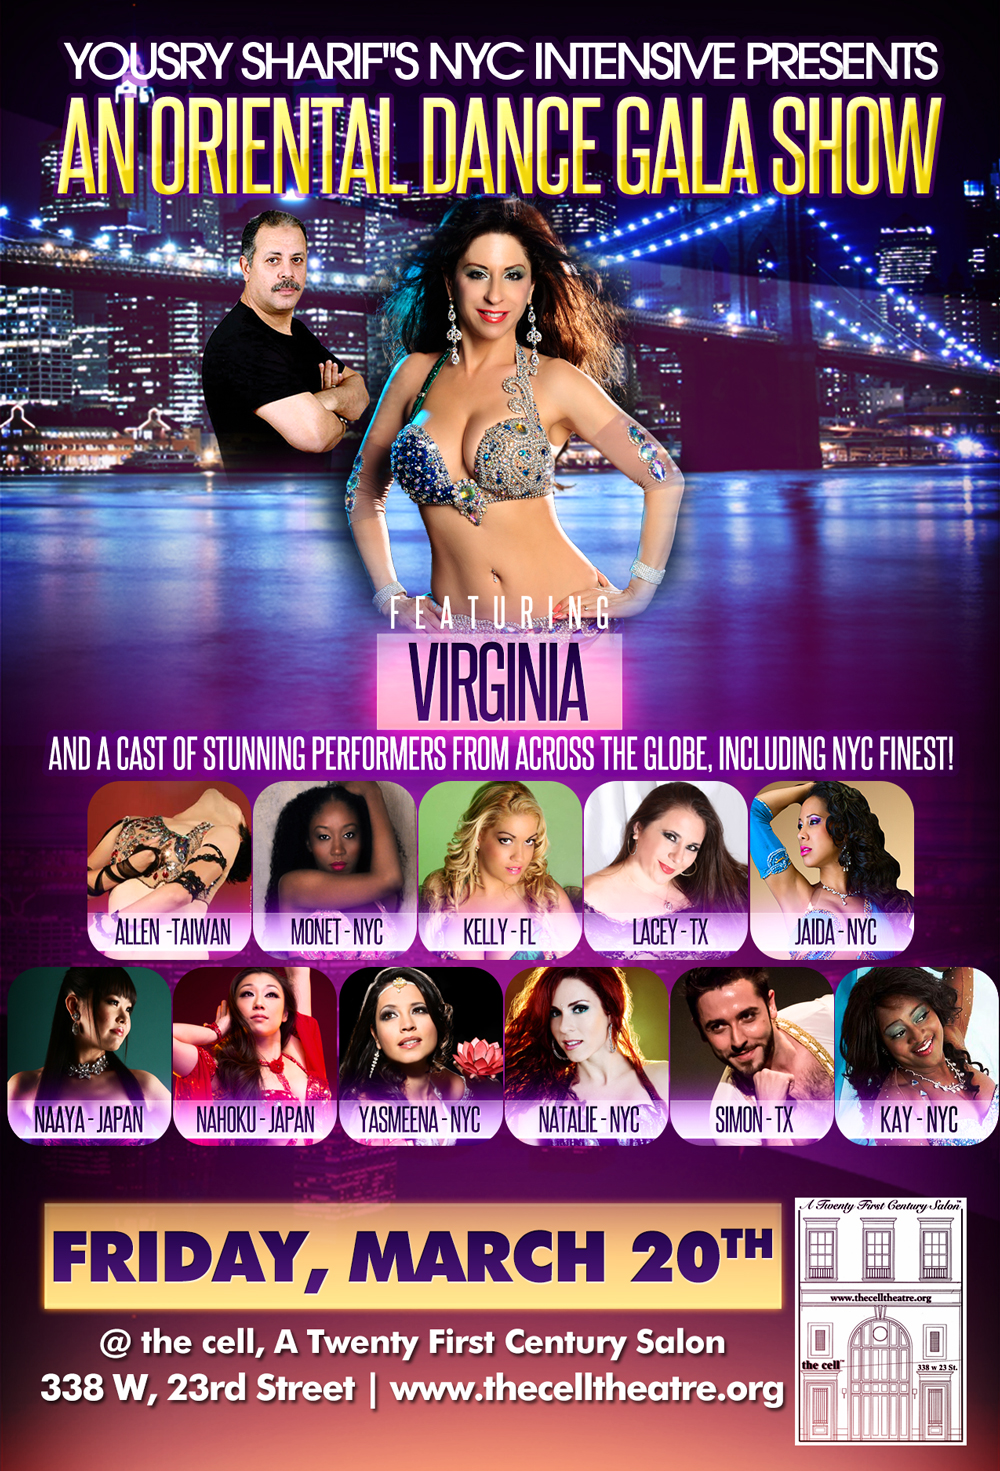 """Yousry Sharif presents An Oriental Gala Show bringing NYC the """"Best in Bellydance"""", starring Virginia, world renowned superstar and protege of Mr. Sharif, as well as stunning performances from his dancers from around the world including NYC's finest!"""